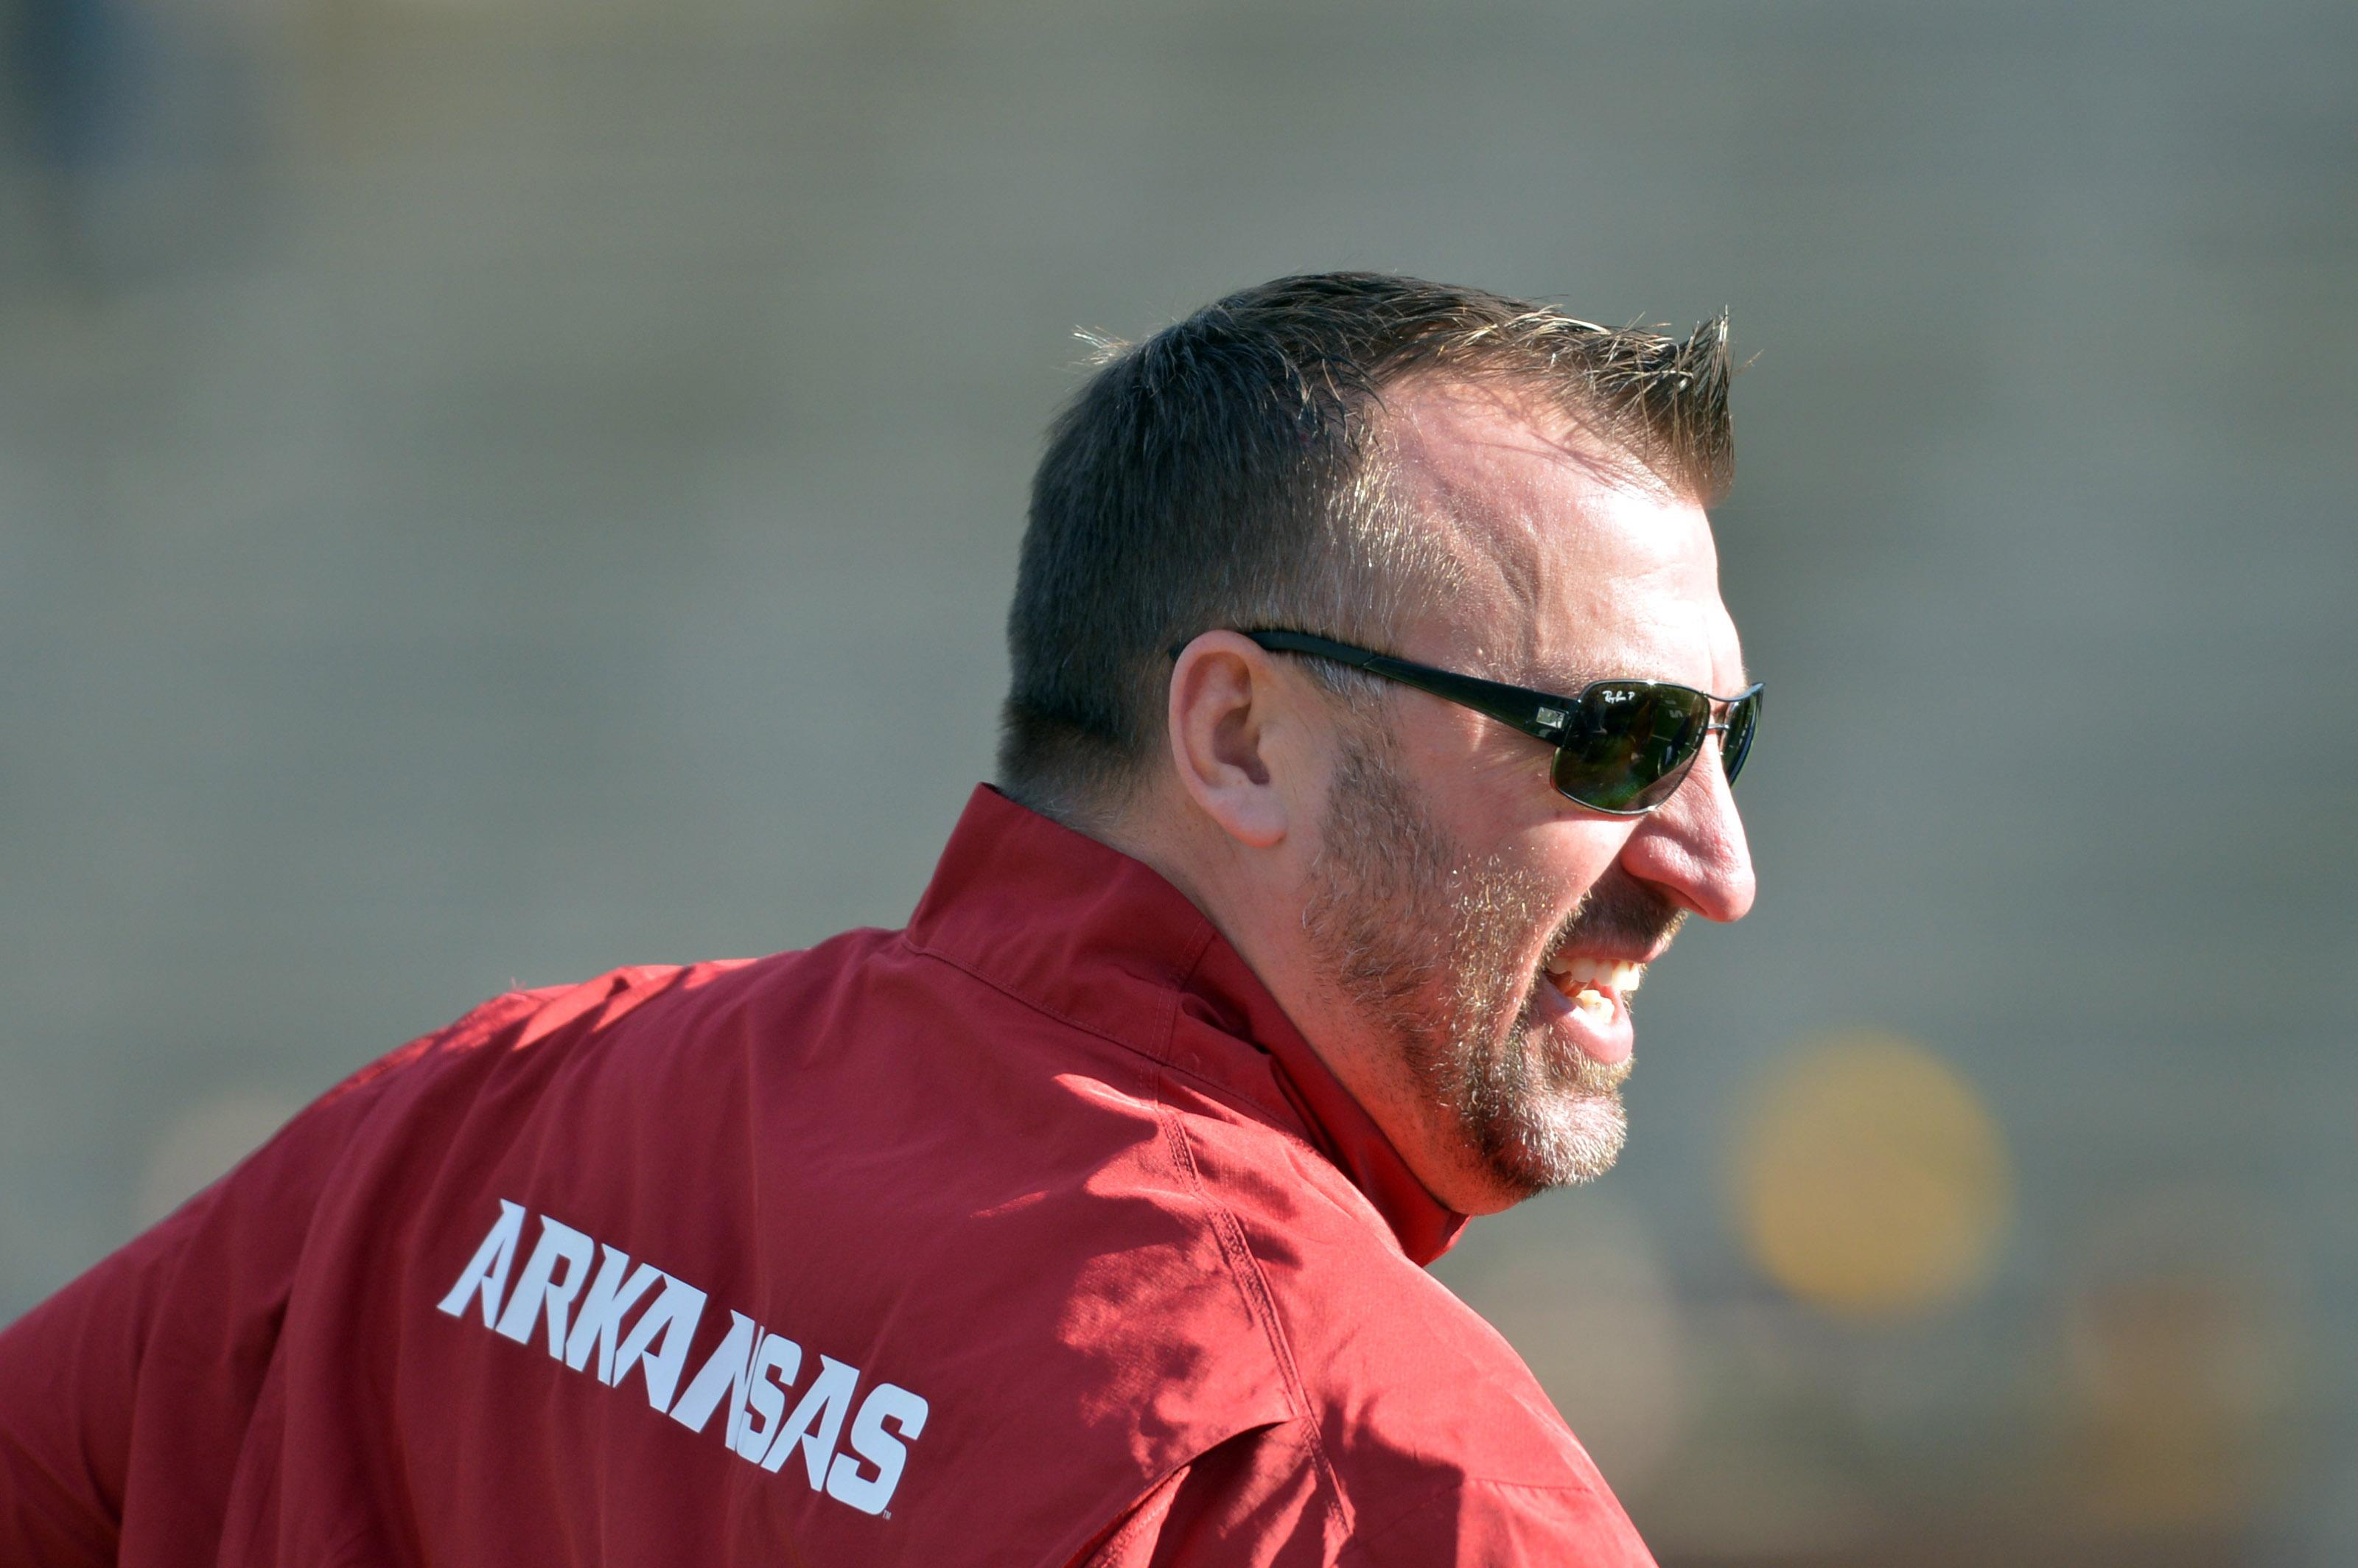 Bret Bielema does 'Horns down' sign in photo with Charlie Strong